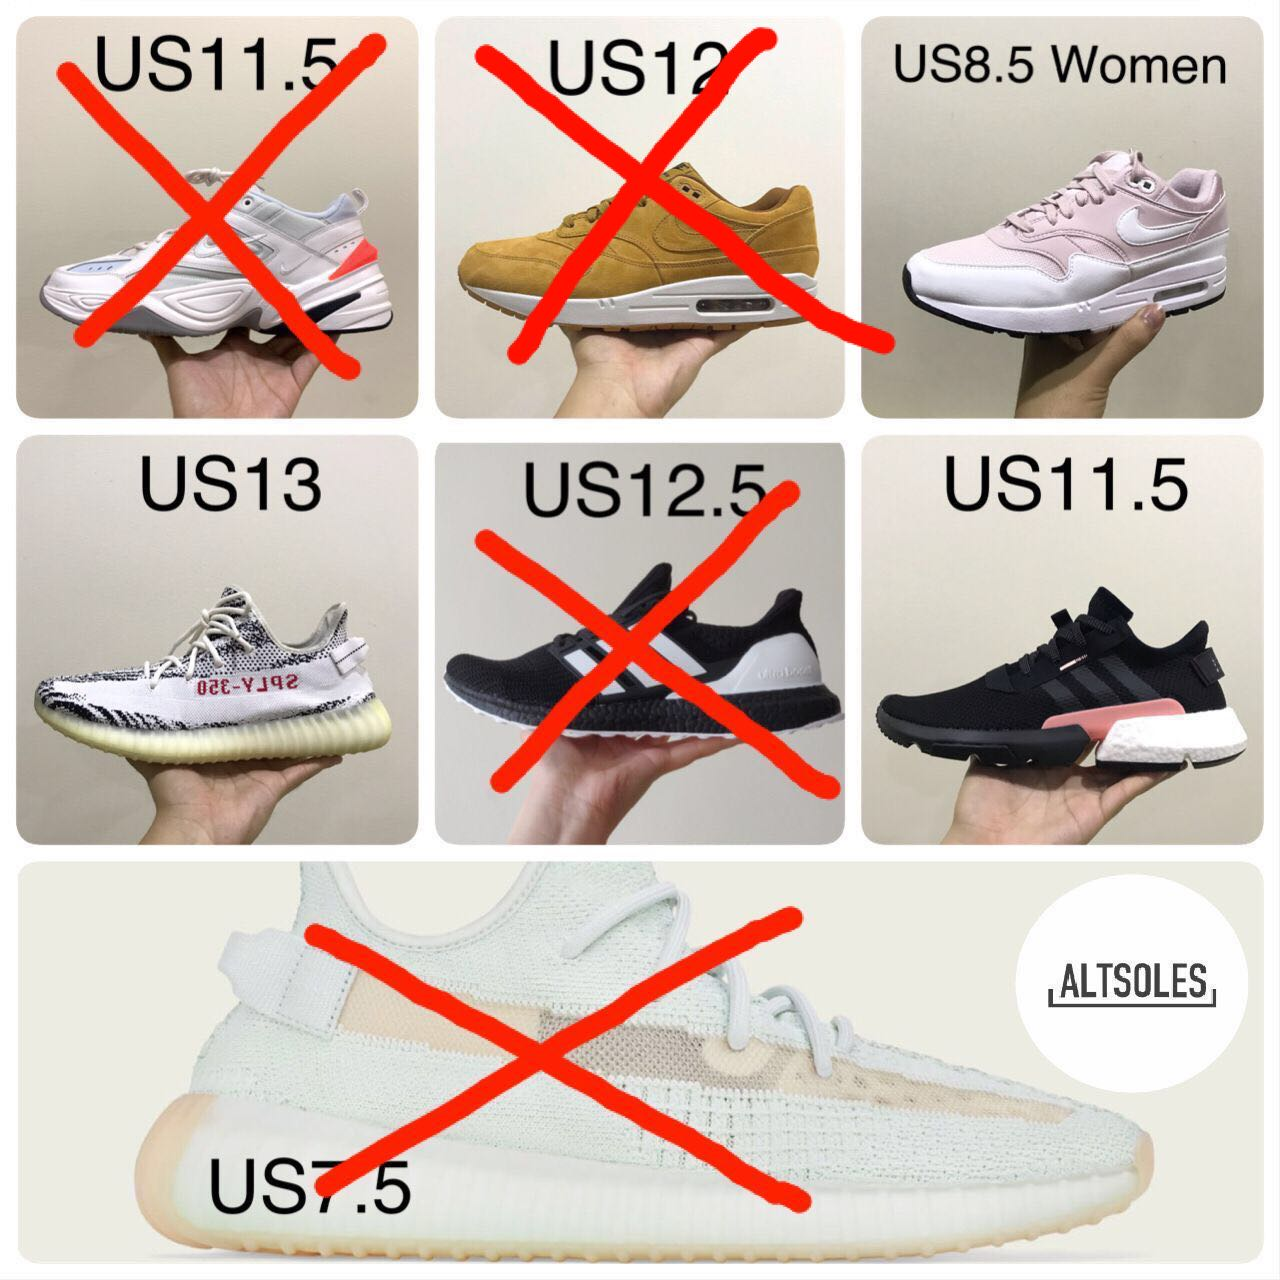 8133d7584 Clearing my Sneakers! Steal Deals!